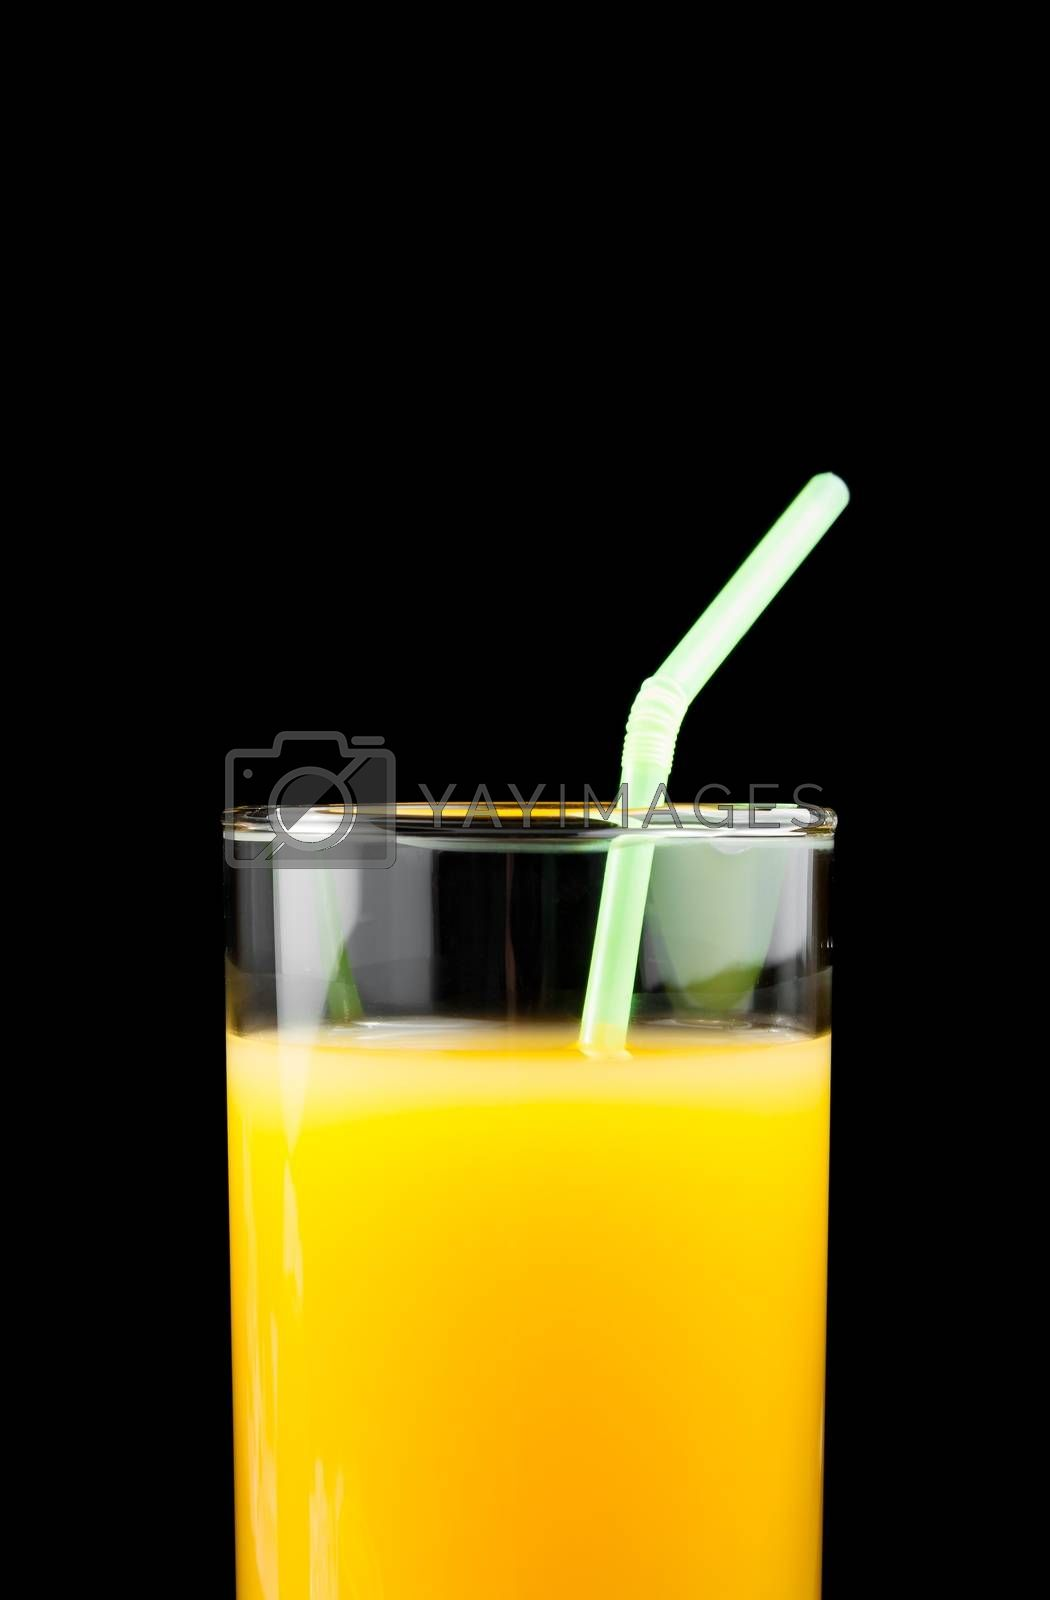 full glass of orange juice with straw and space for text by donfiore